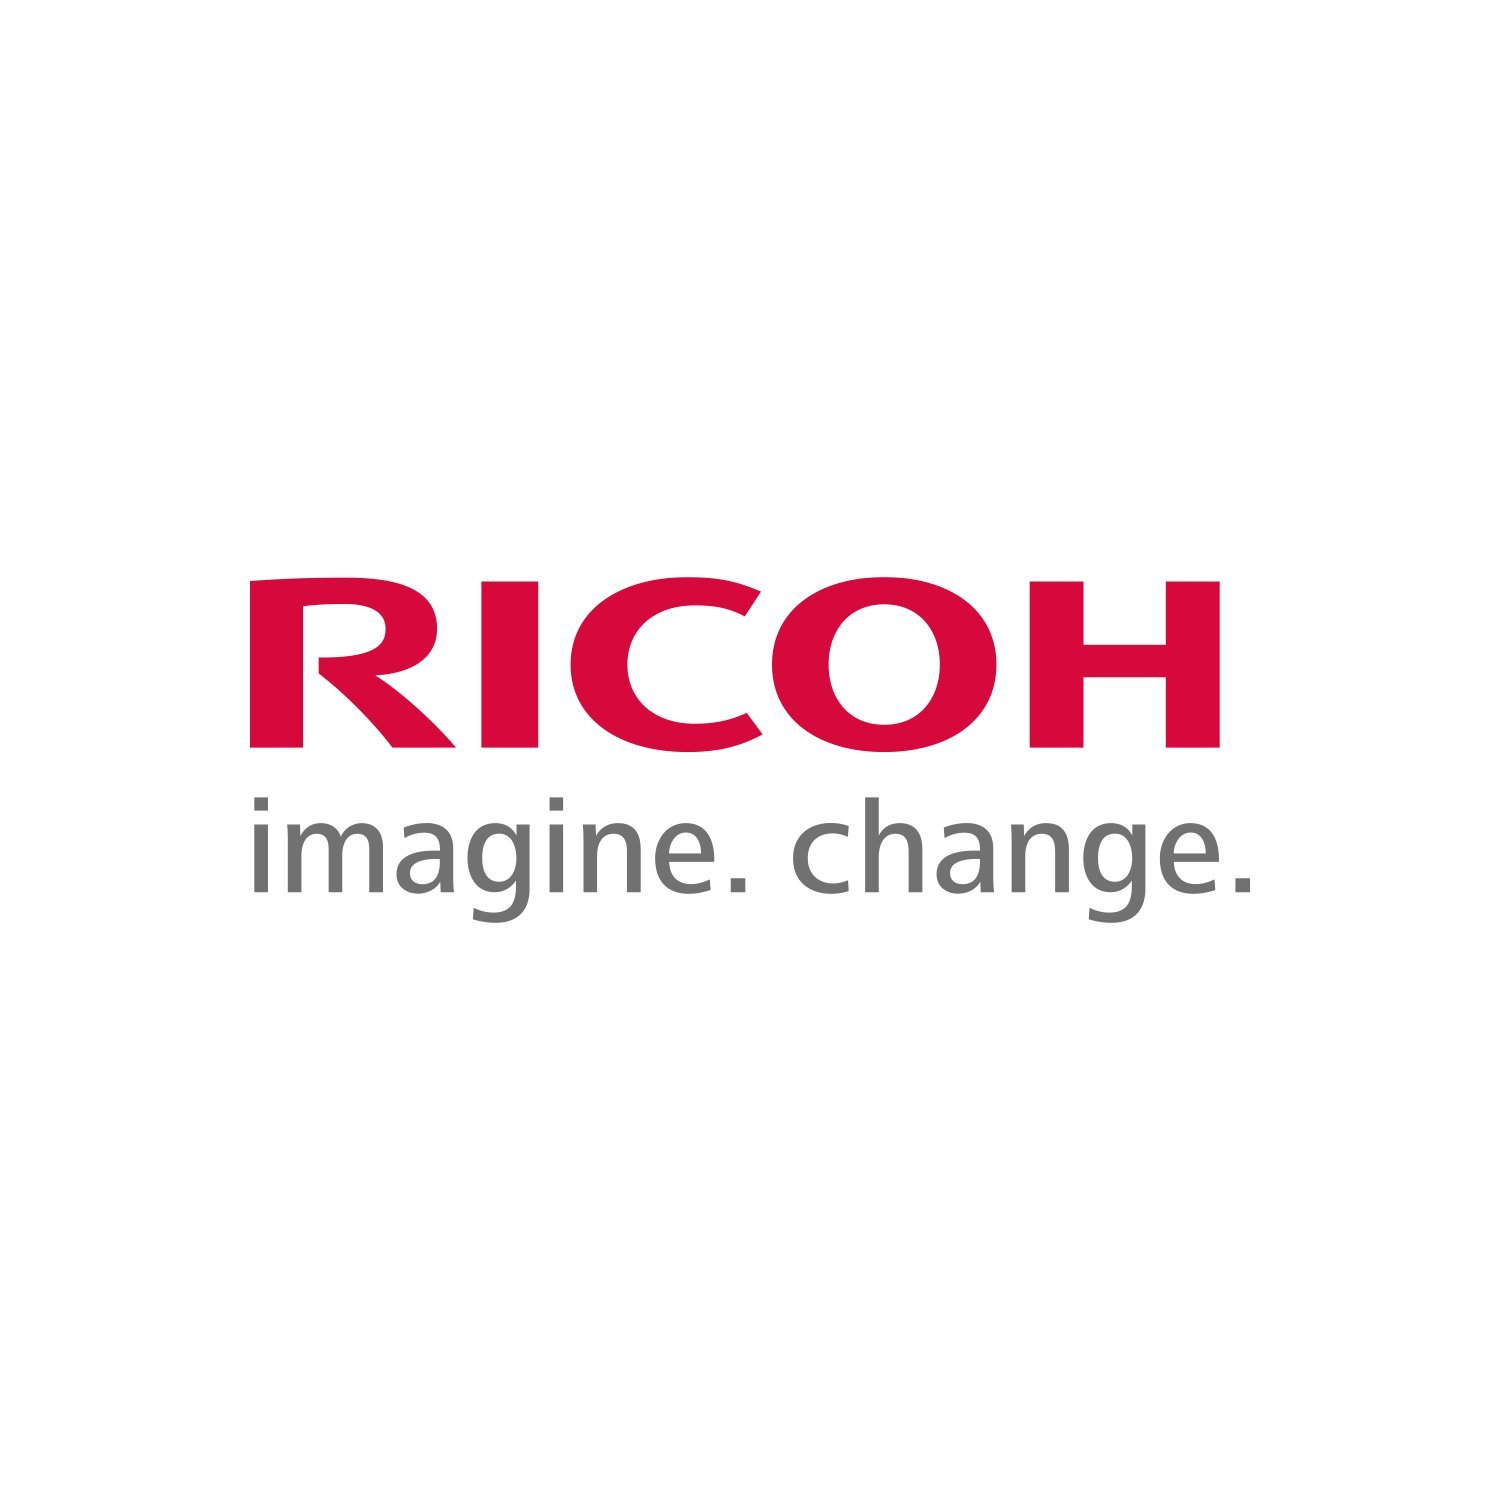 Ricoh Internal Finisher Staple Refill, 5000 Staples/Ctg, 2 Ctg/Ctn (415010) by Ricoh